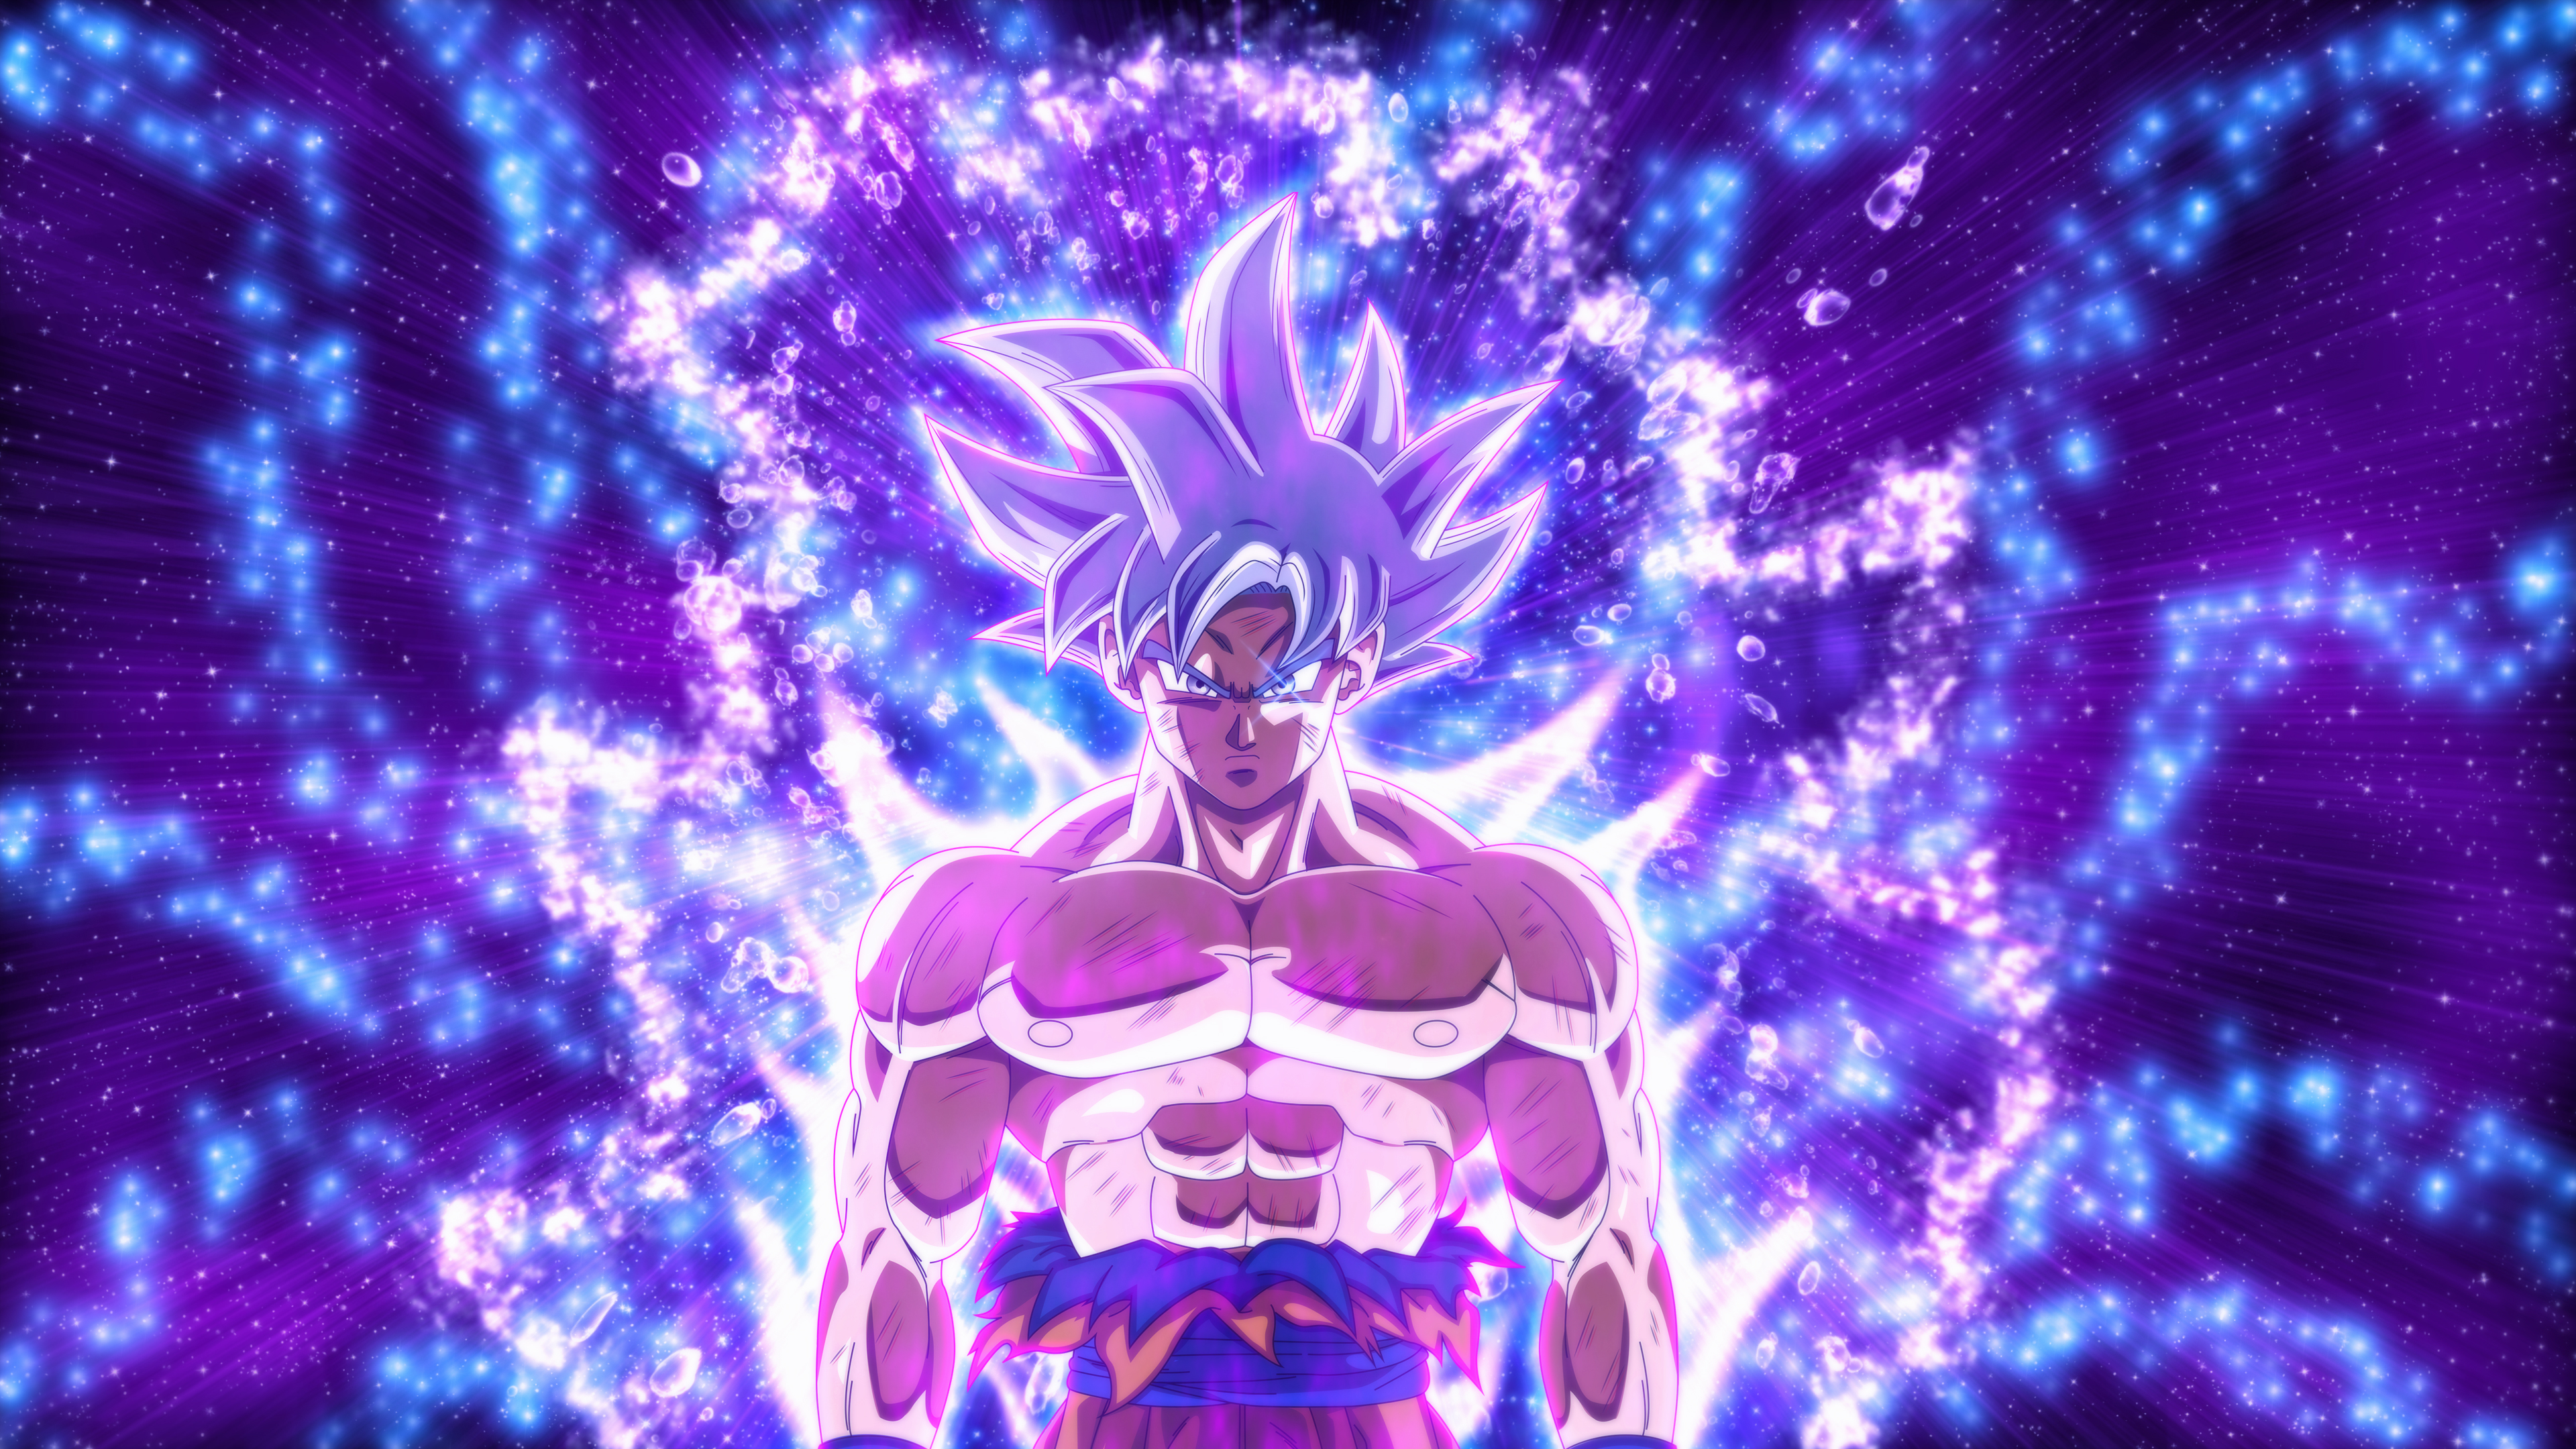 Dragon Ball Super Goku Ultra Instinct 4k Goku Mastered Ultra